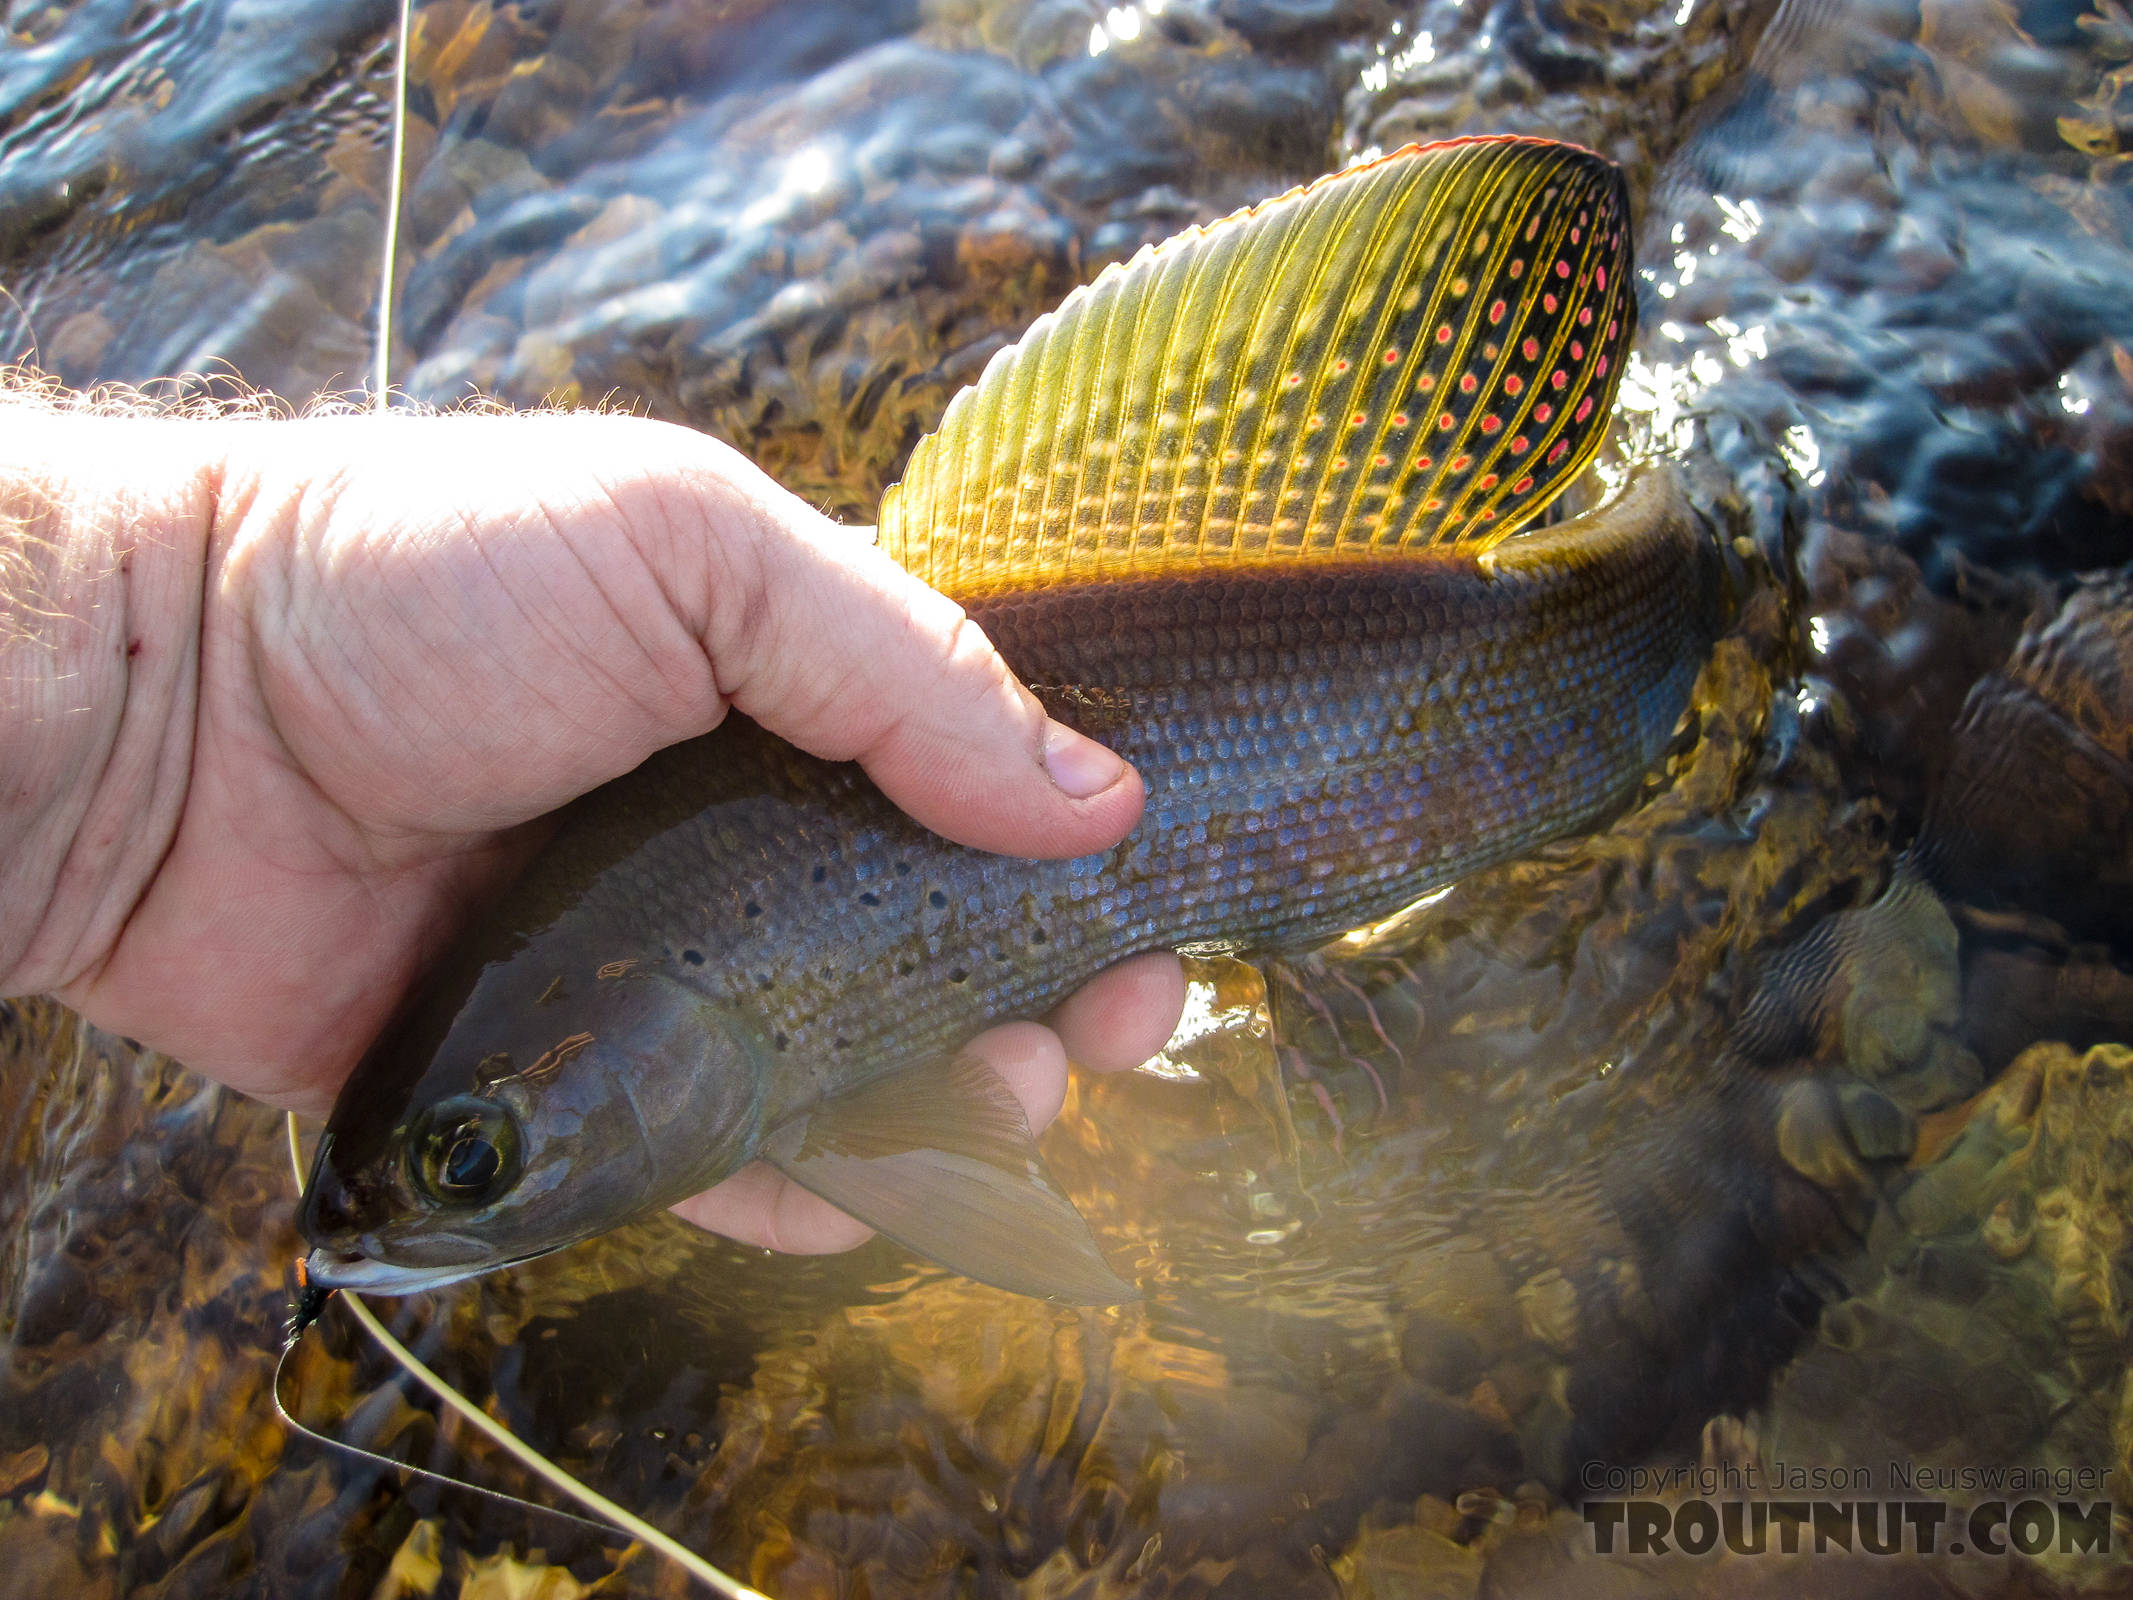 Beautiful grayling brought to hand. From Nome Creek in Alaska.